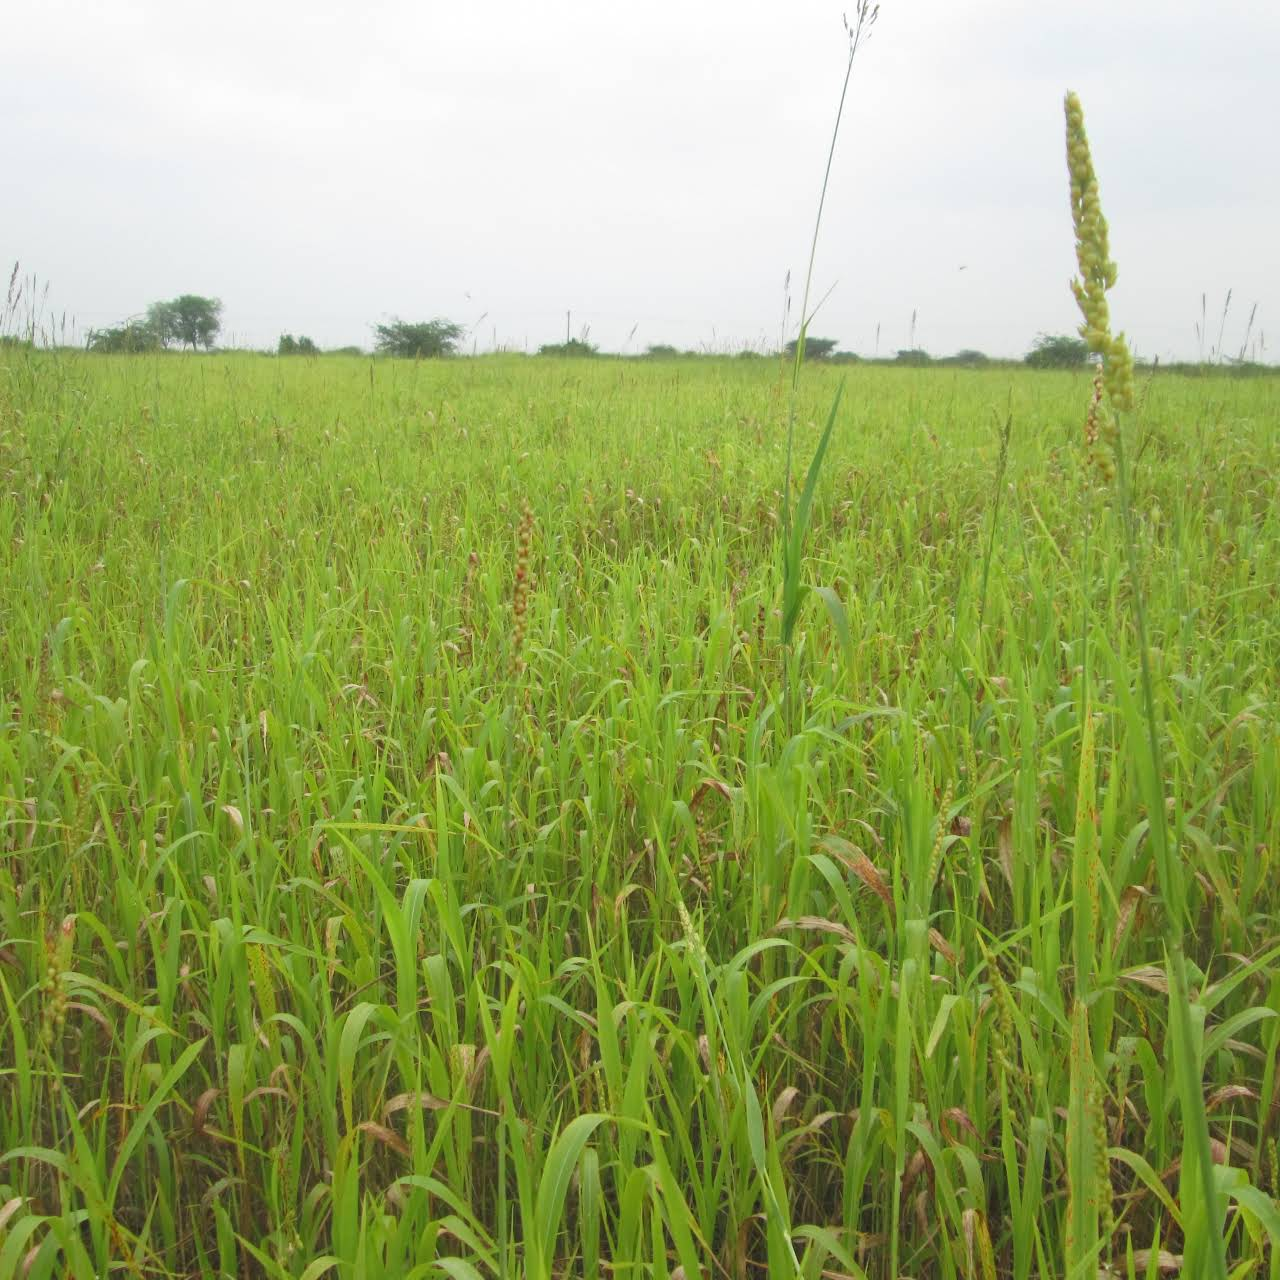 Agriculture Land for Sales - Tirunelveli - 1 Acre,5 Acres,10